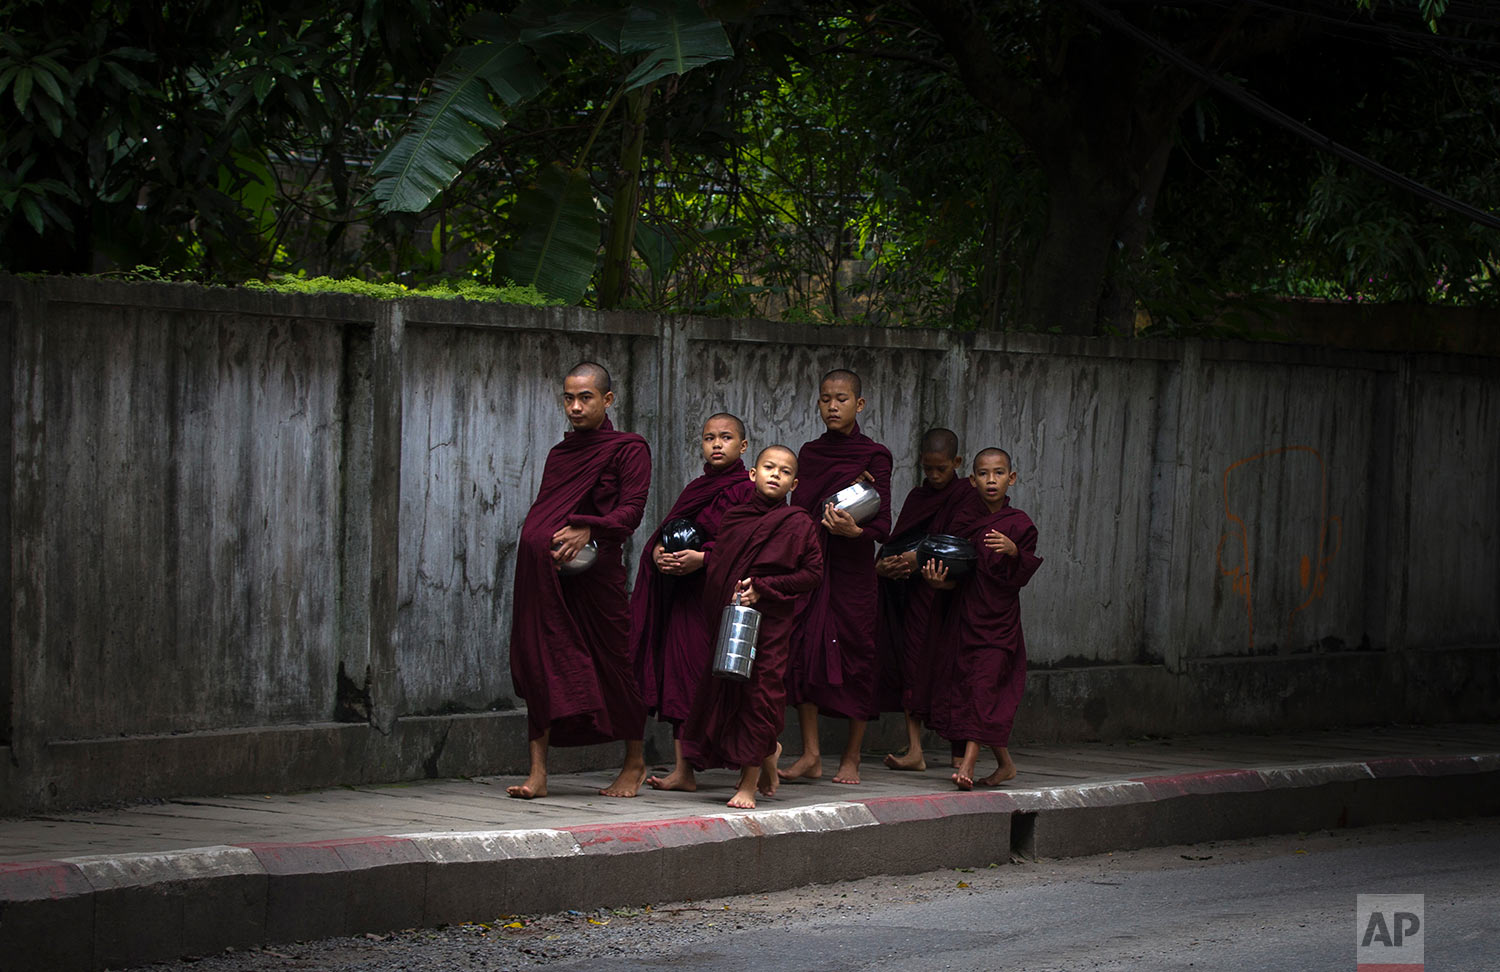 """In this Friday, June 16, 2017, file photo, a group of Myanmar Buddhist monks walk to collect their morning """"alms"""" or offerings in Yangon, Myanmar. (AP Photo/Thein Zaw, File)"""